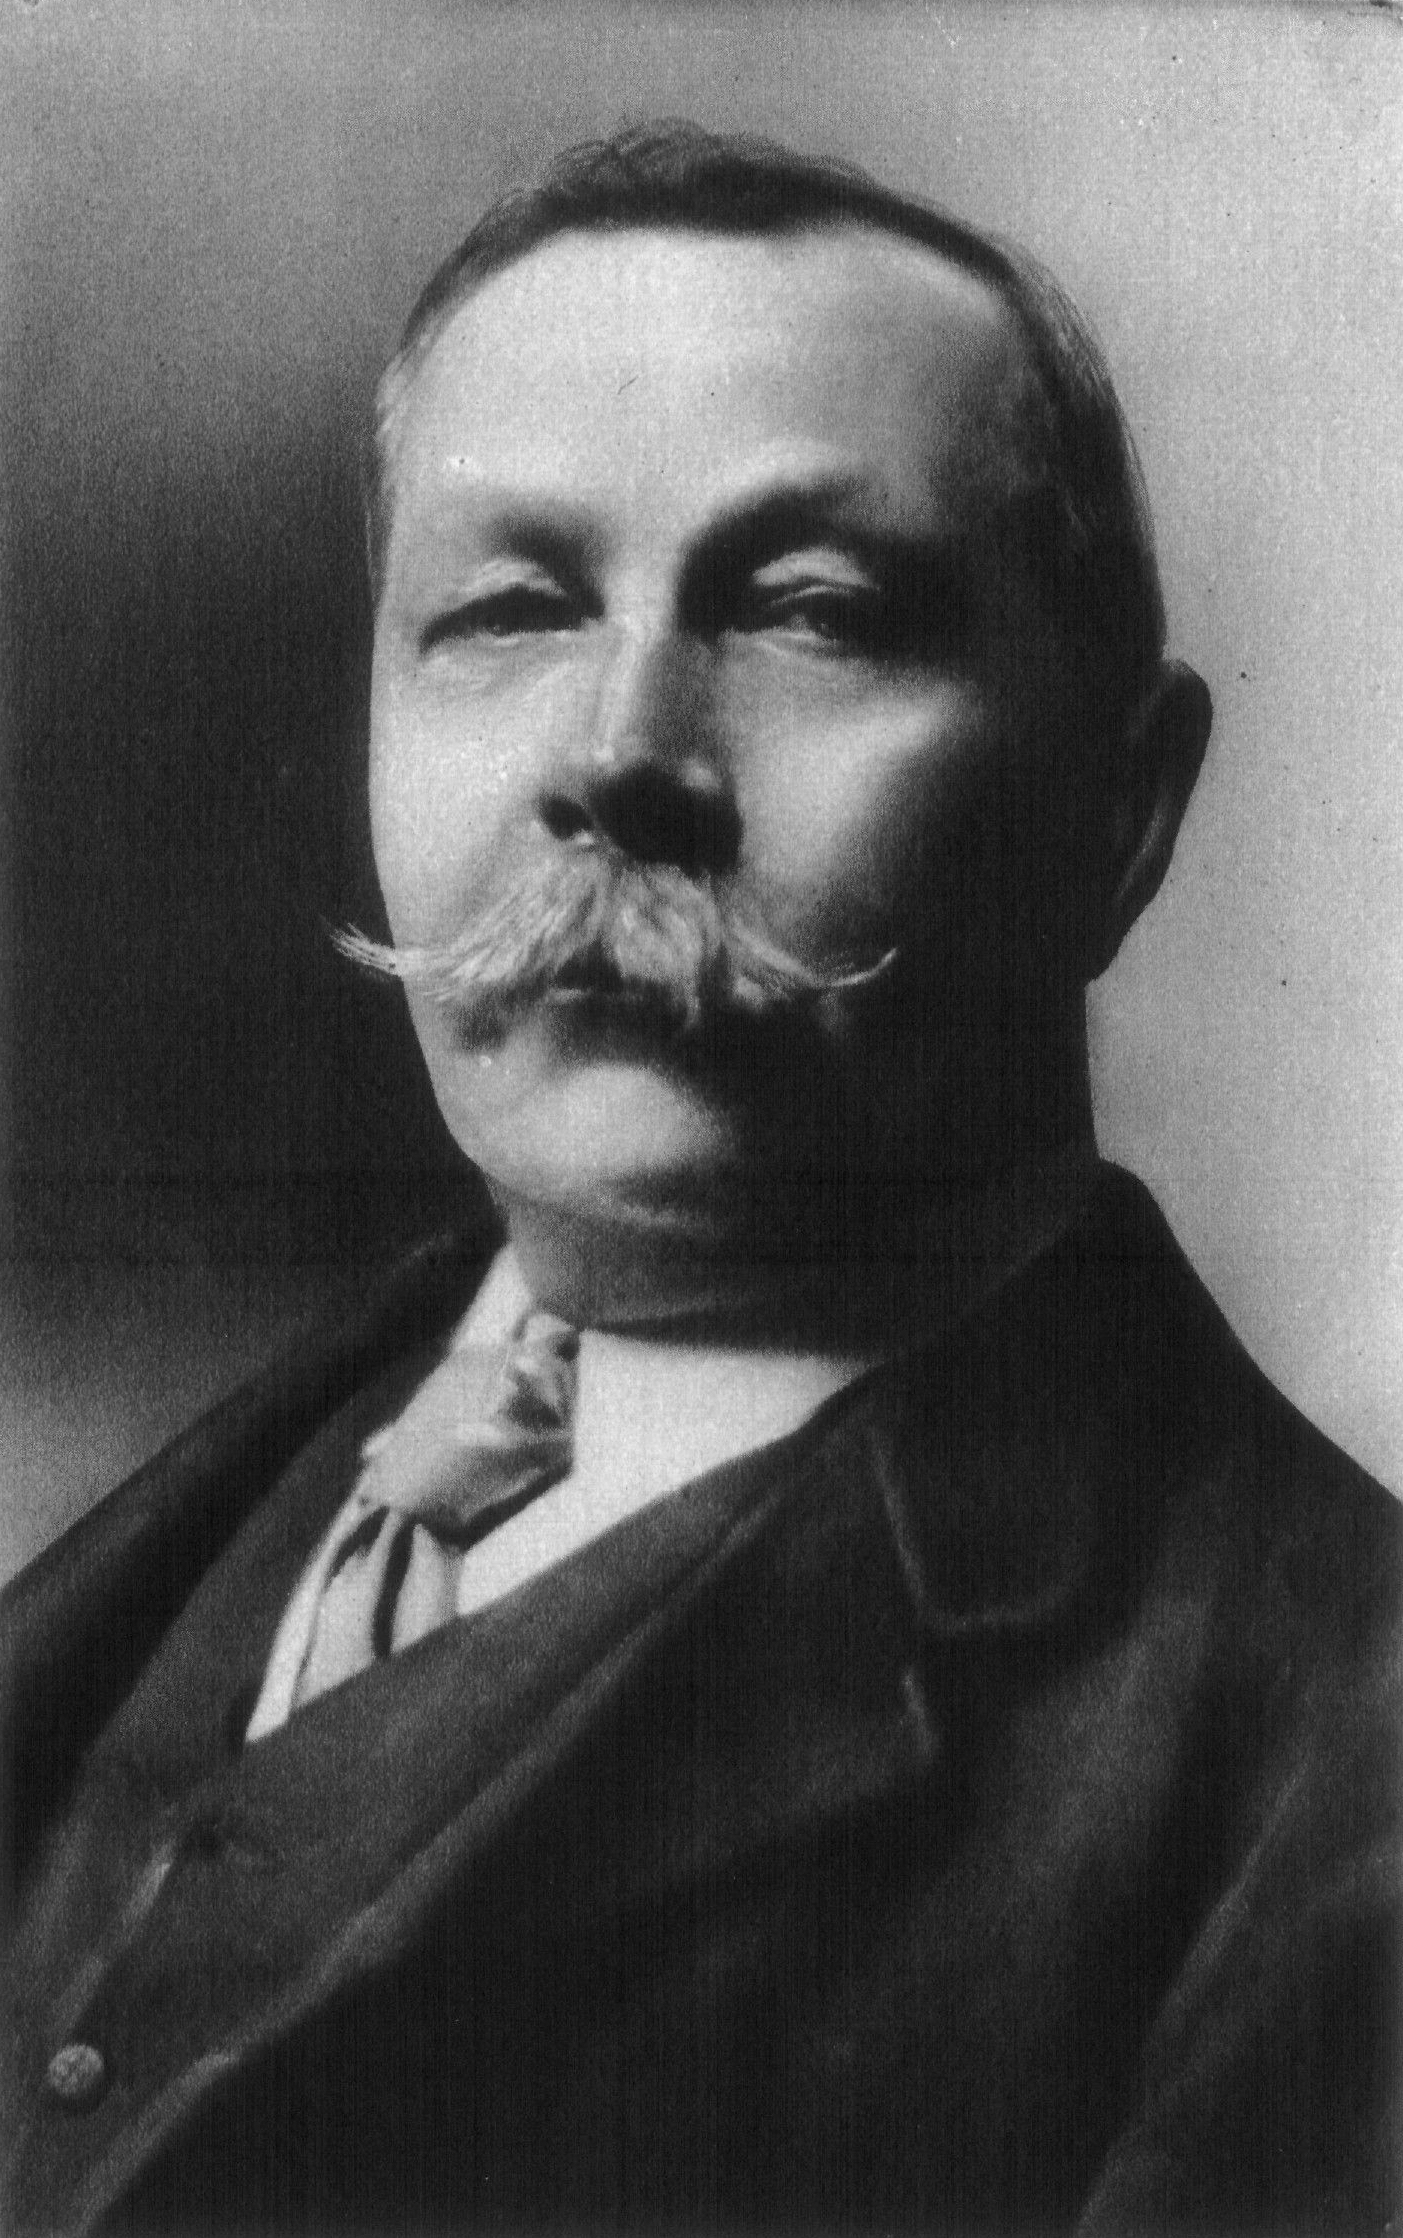 http://upload.wikimedia.org/wikipedia/commons/b/bb/Conan_doyle.jpg